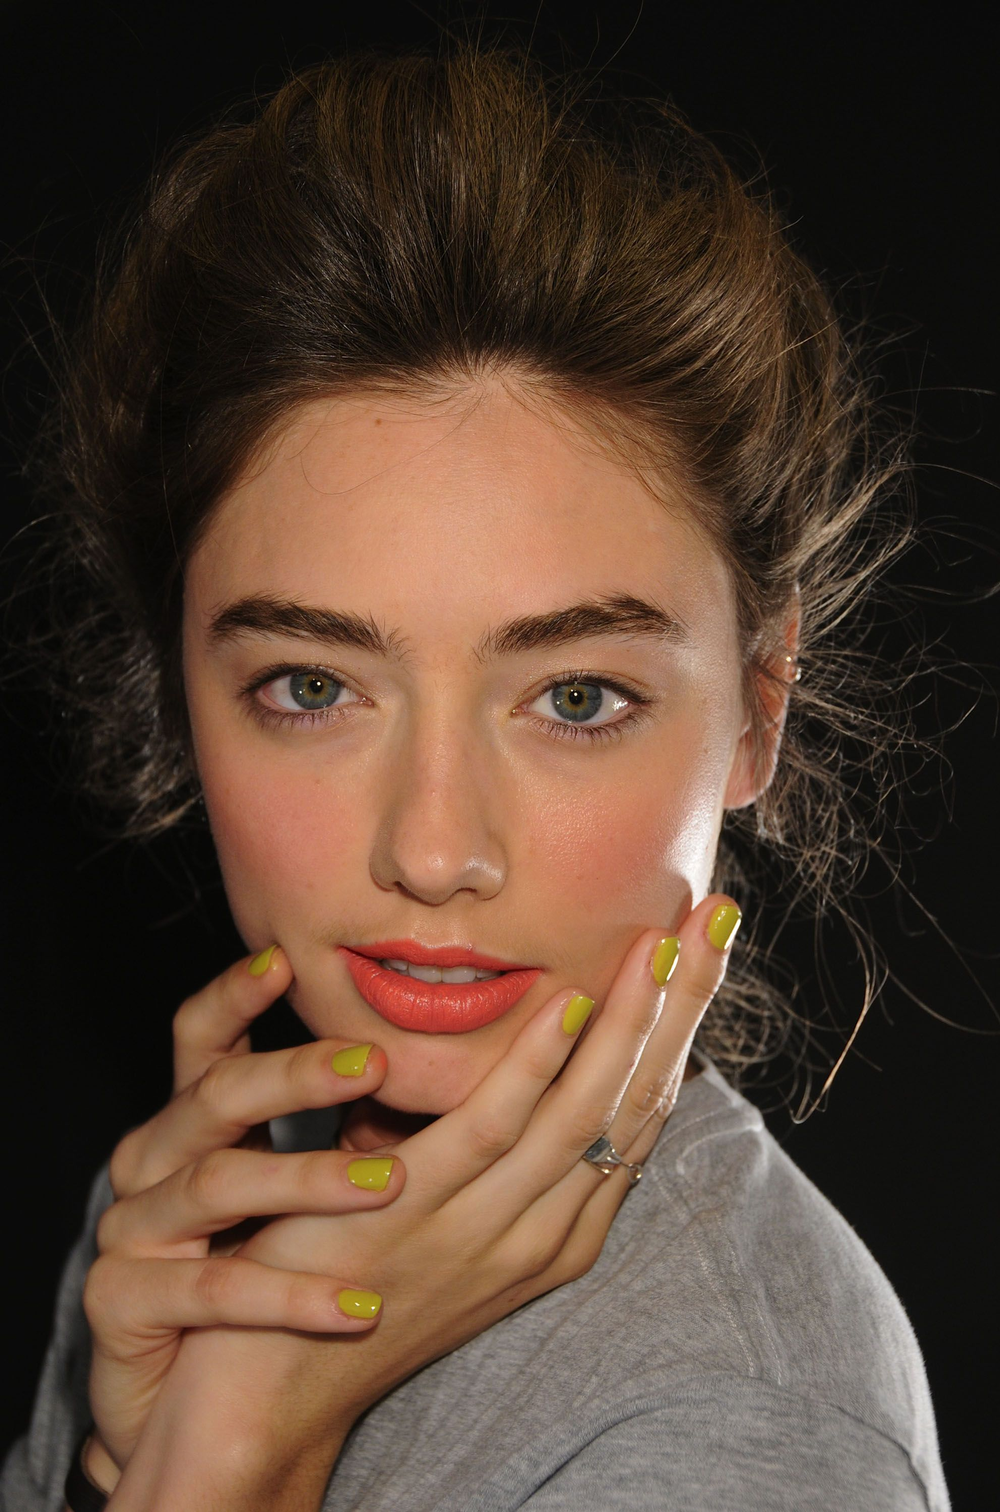 <p>At the Karen Walker show, nail tech Wanda Ruiz custom blended <strong>CND </strong>Bicycle Yellow with seven drops of Blackjack for a summery, youthful shade.</p> <p><em>Photo courtesy of Creative Nail Design (CND)</em></p>